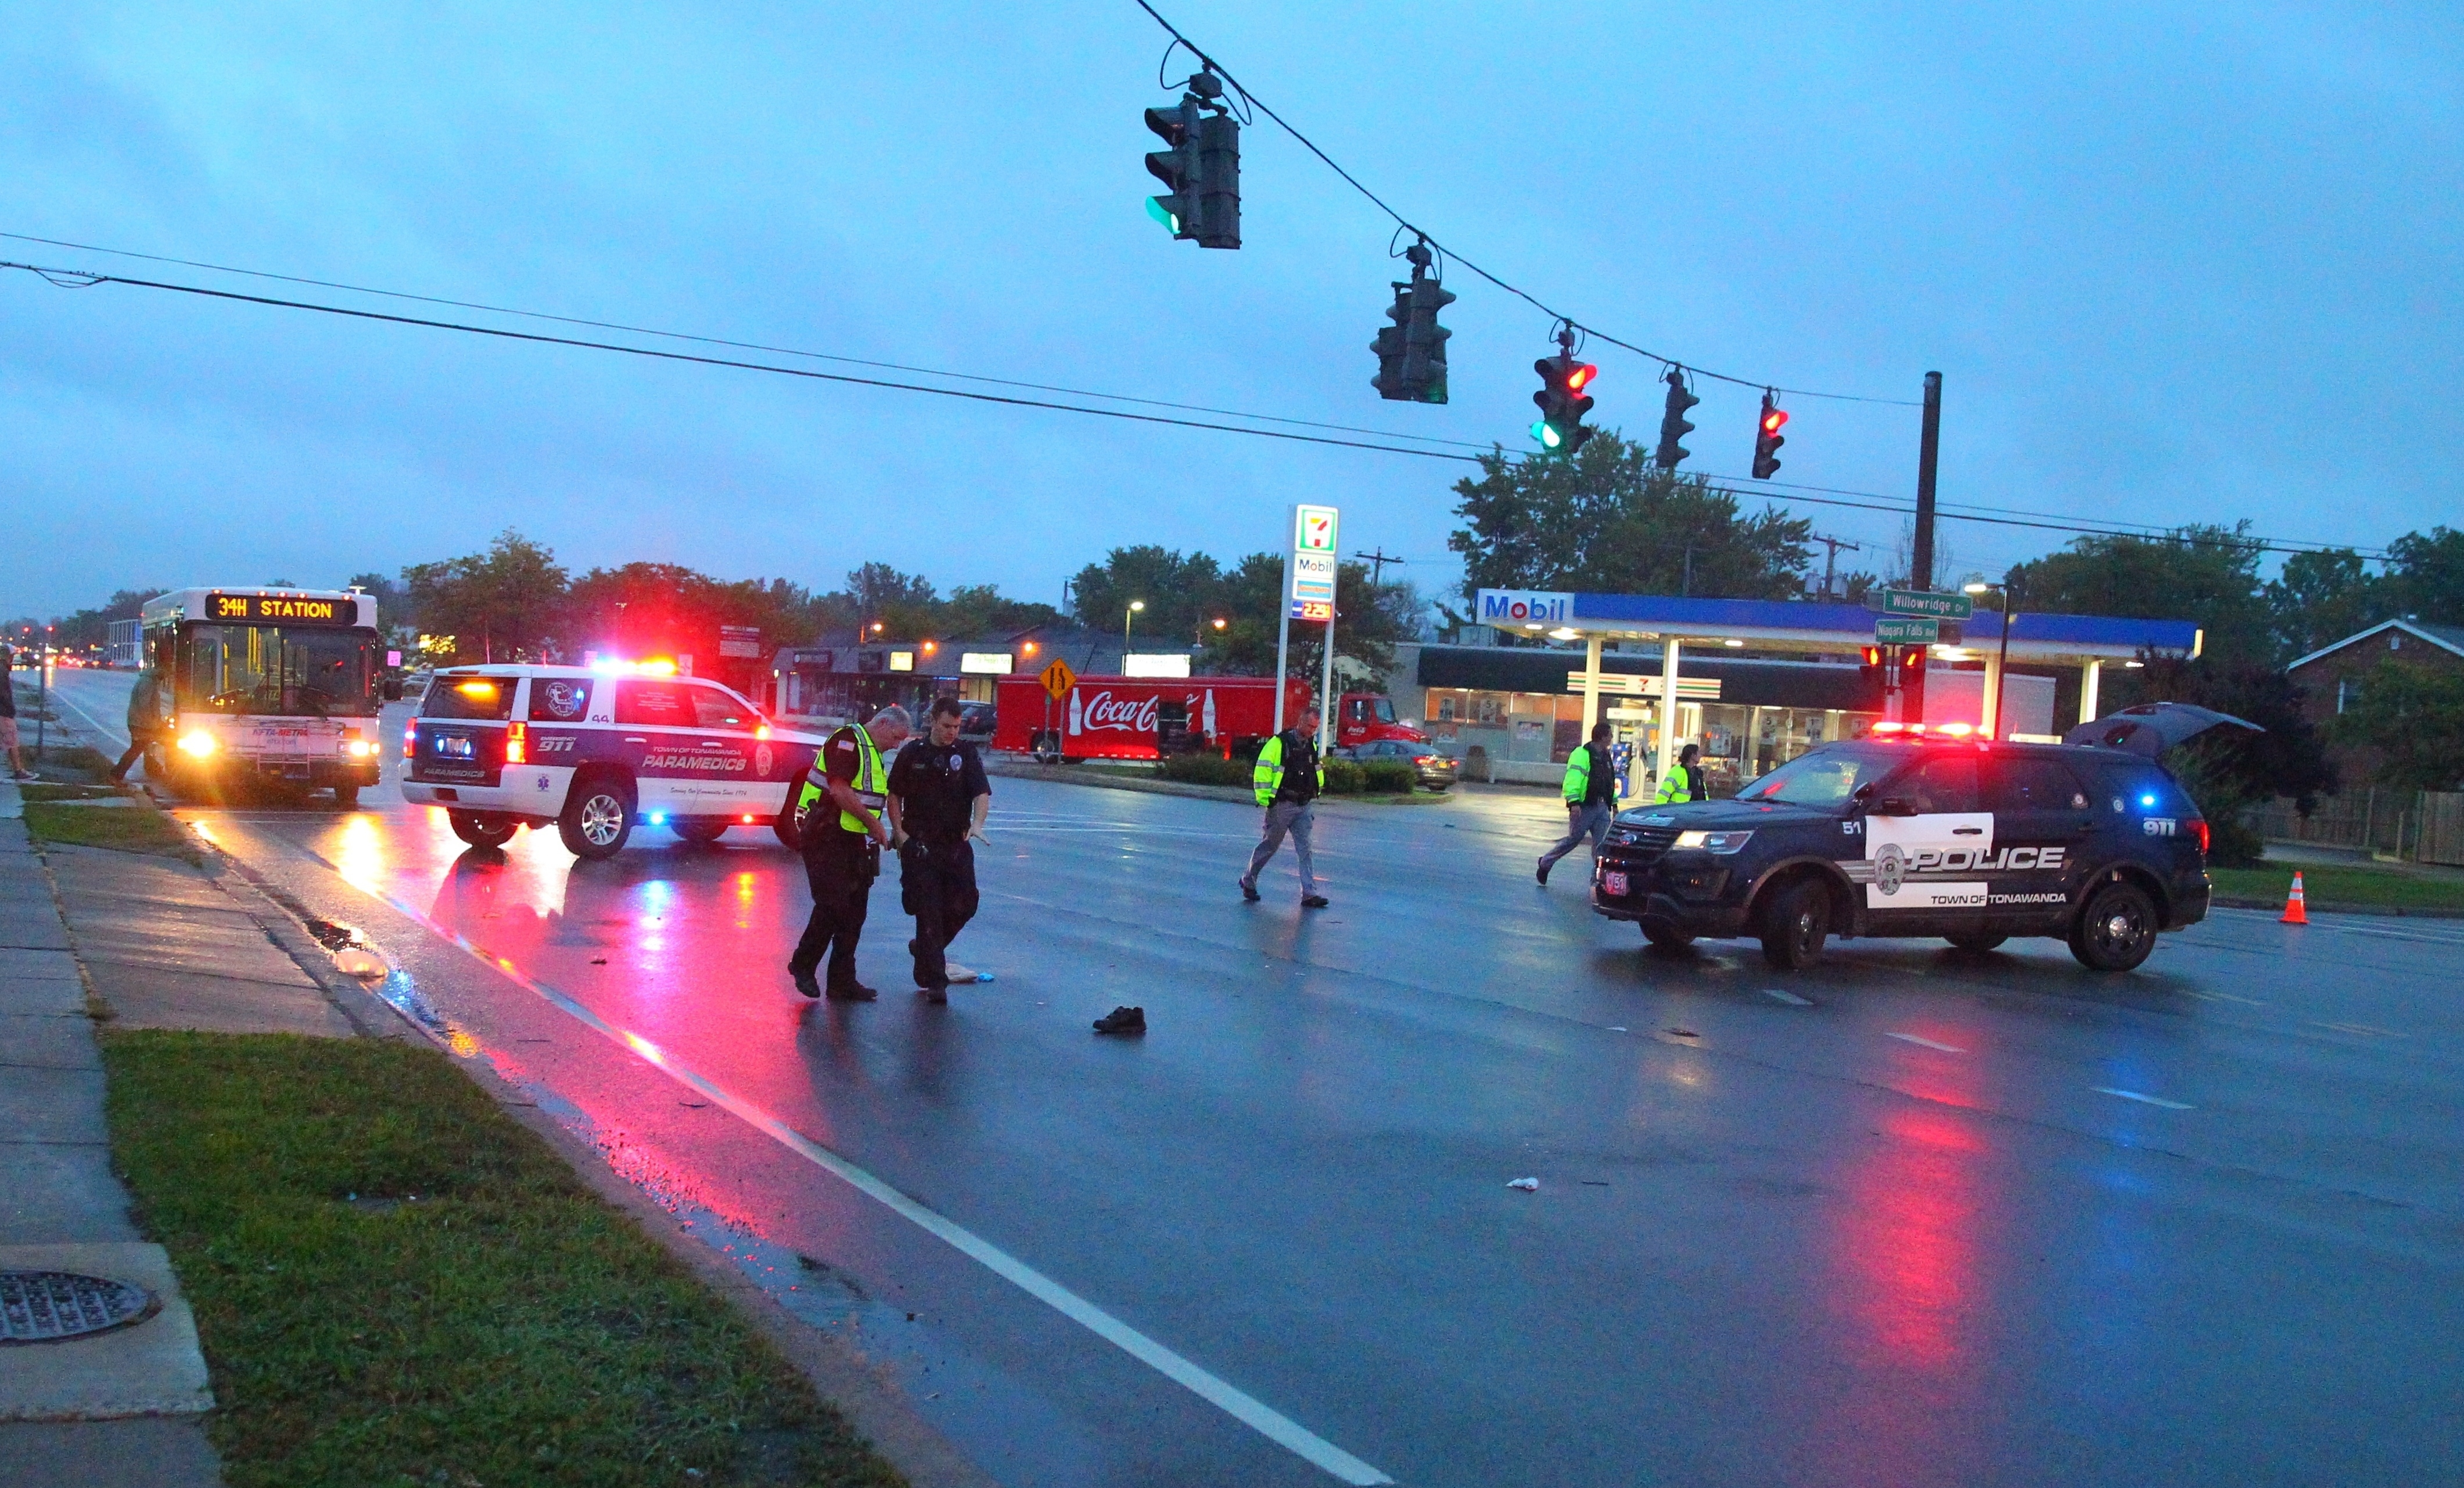 Tonawanda Police on the scene where a pedestrian was taken to ECMC after being hit by a vehicle at the intersection of the Southbound lane of Niagara Falls Boulevard and Willow Ridge in the Town of Tonawanda on Thursday, Sept. 29, 2016. (John Hickey/Buffalo News)